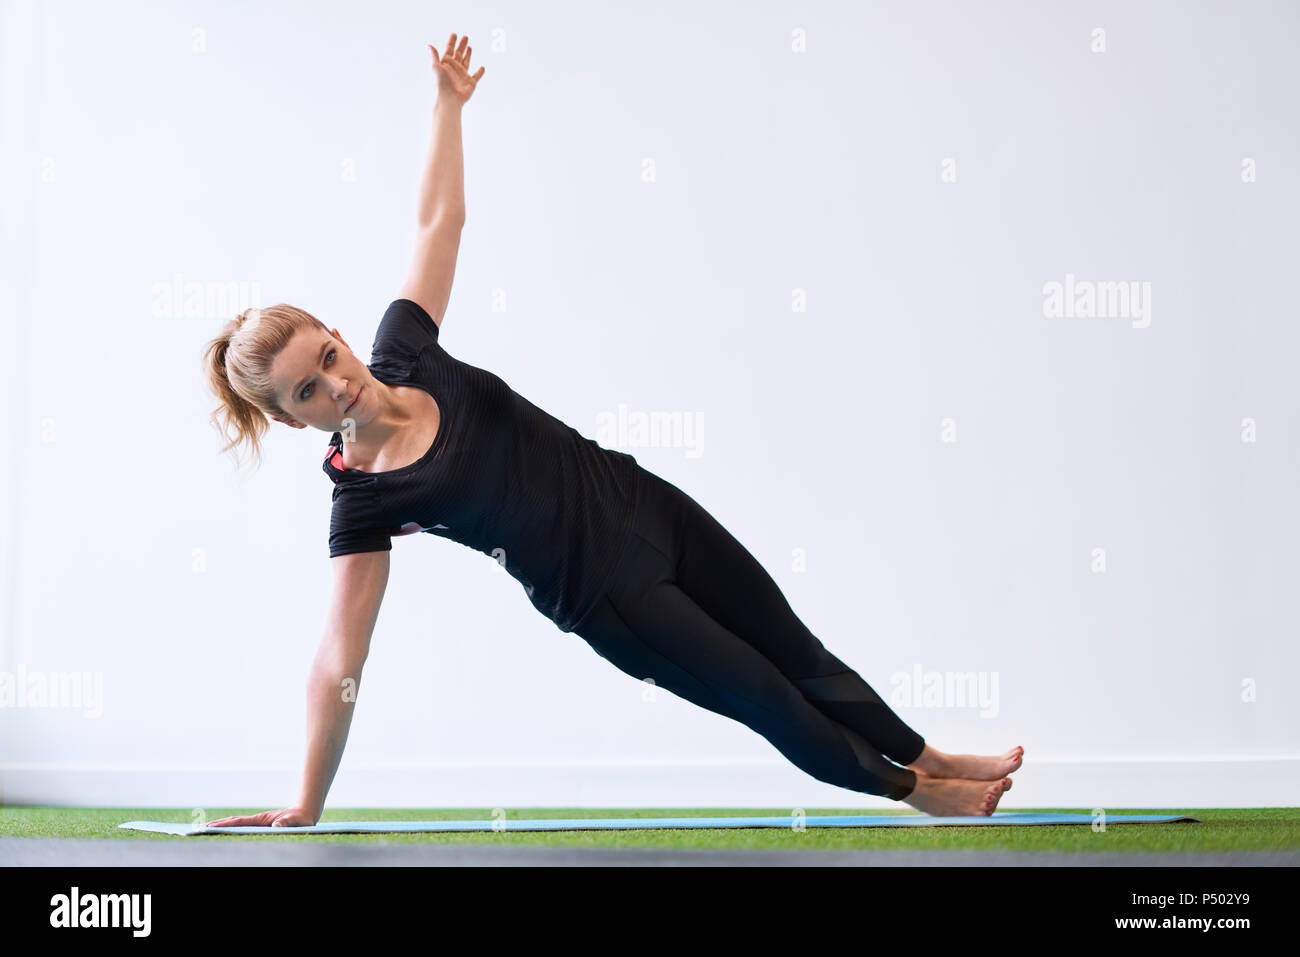 Woman doing side plank yoga exercise in studio - Stock Image